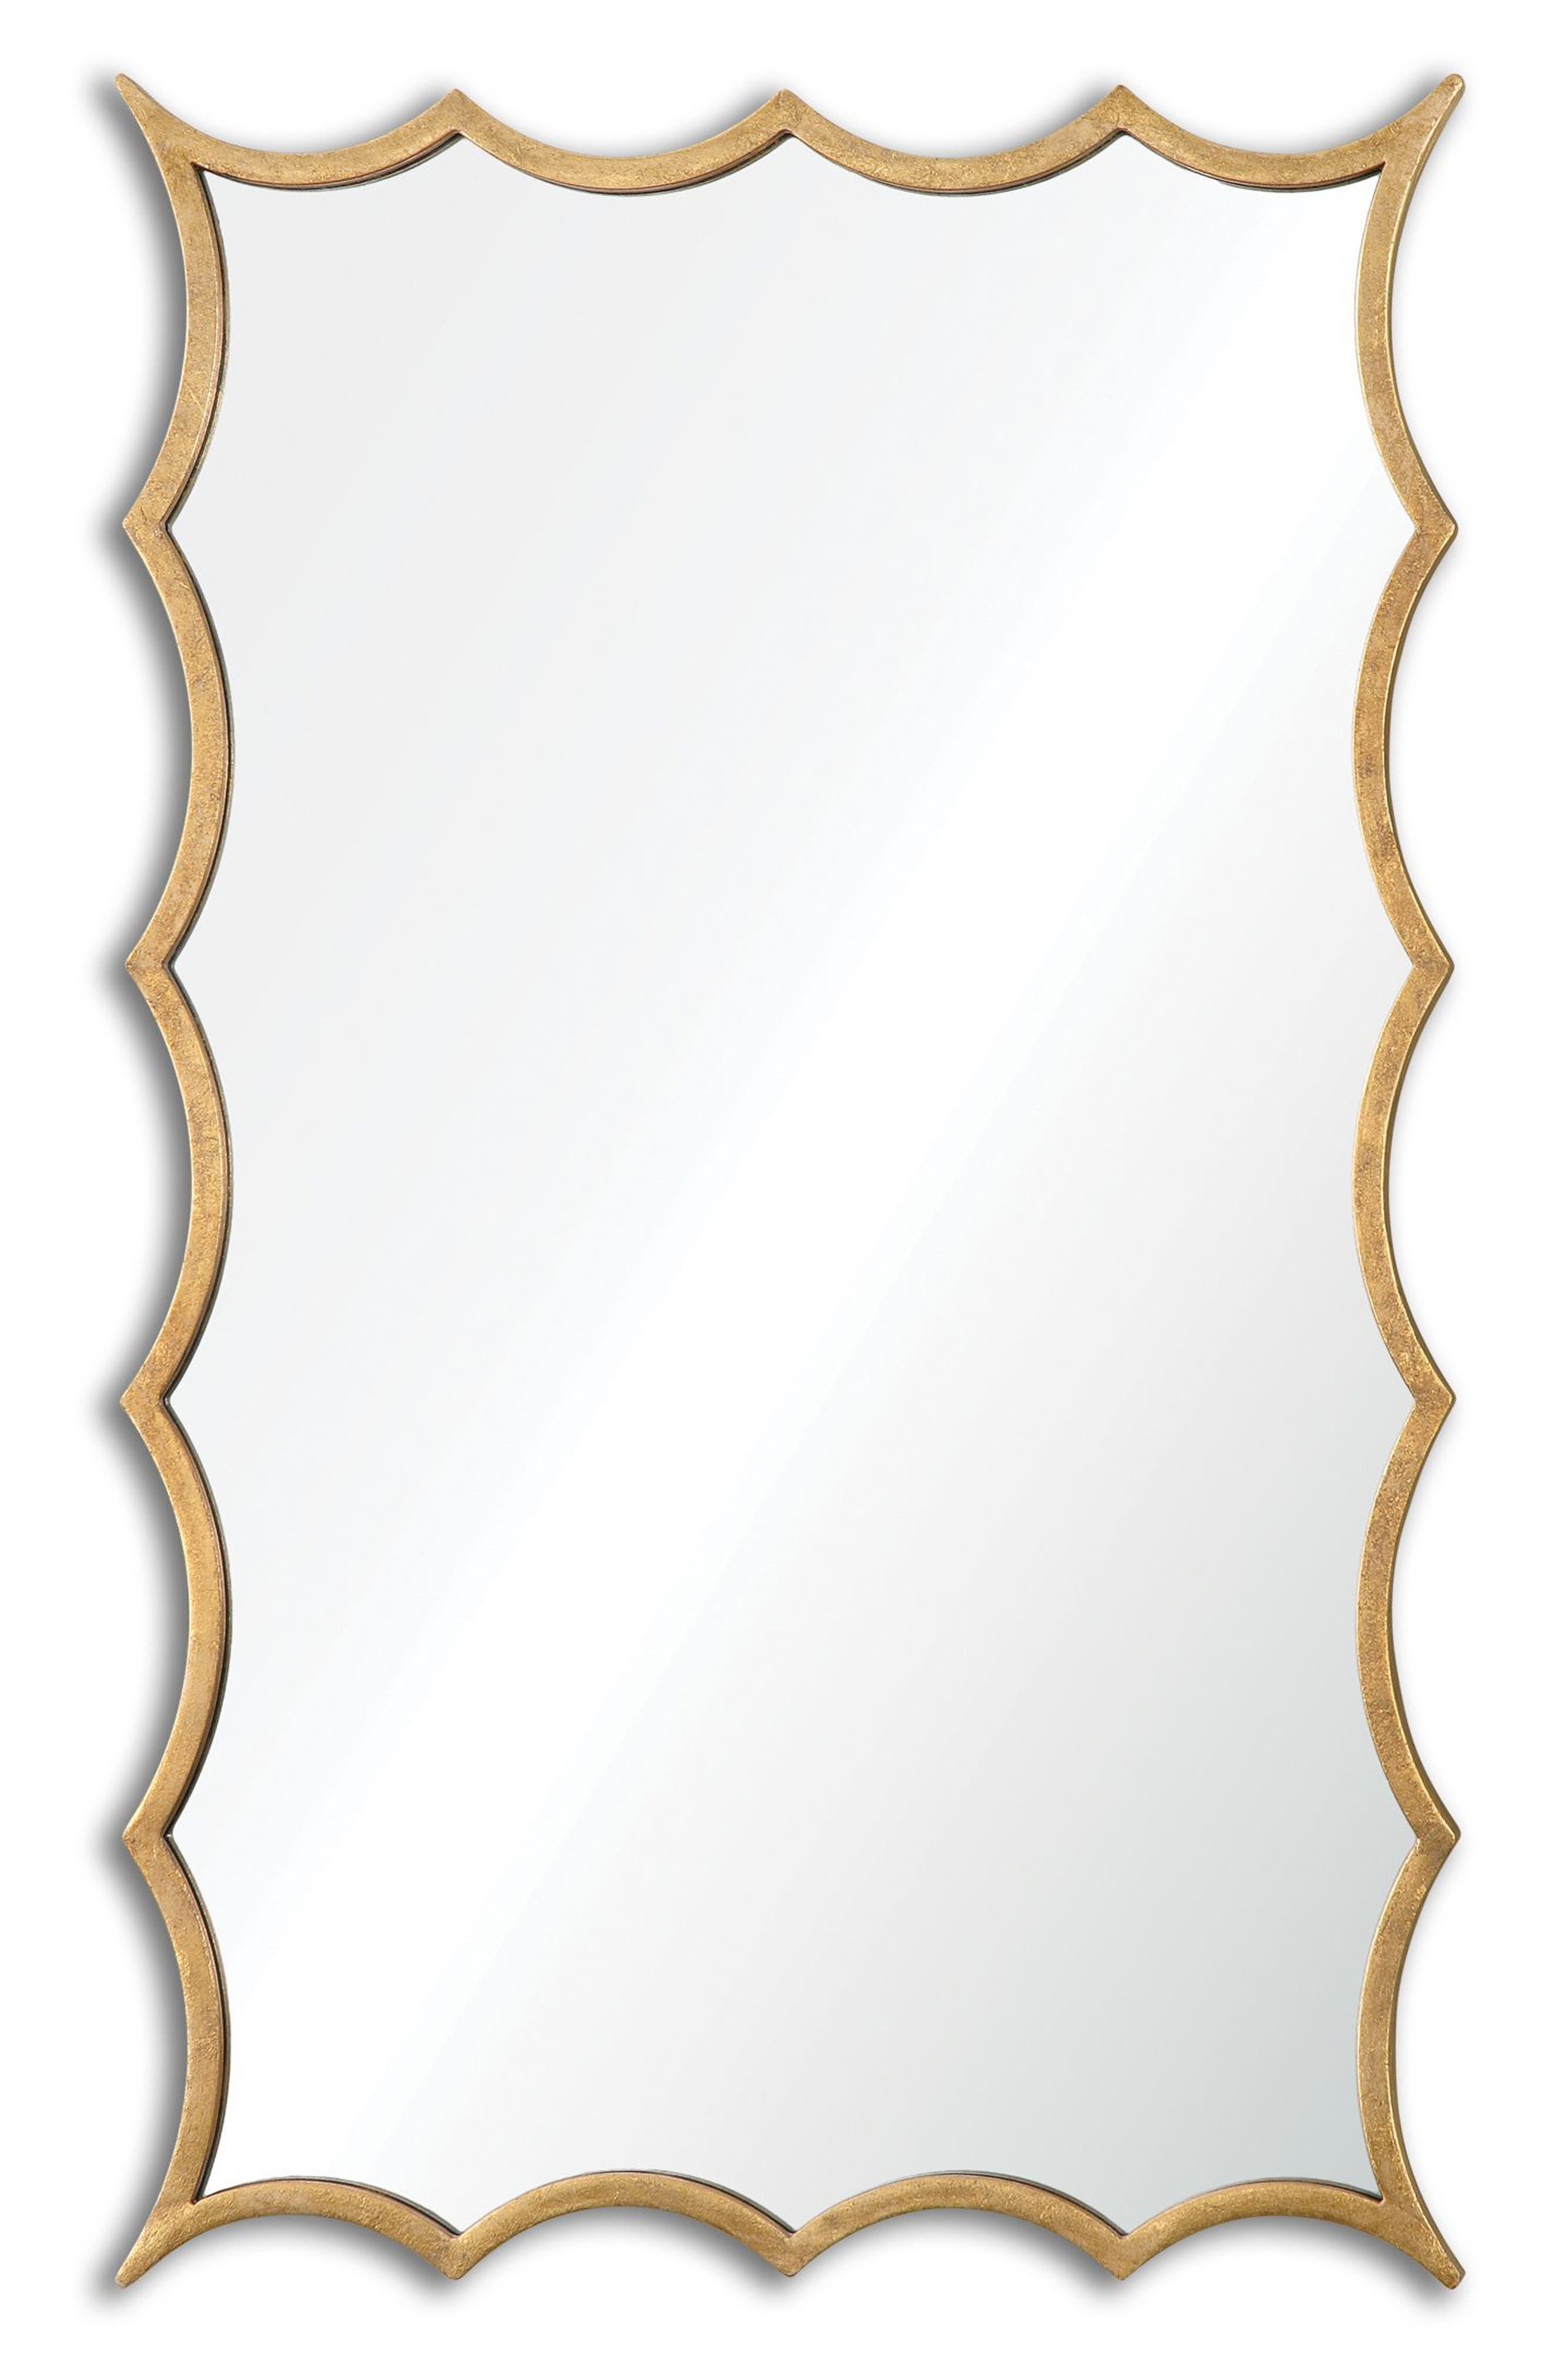 Dareios Wall Mirror,                             Main thumbnail 1, color,                             710